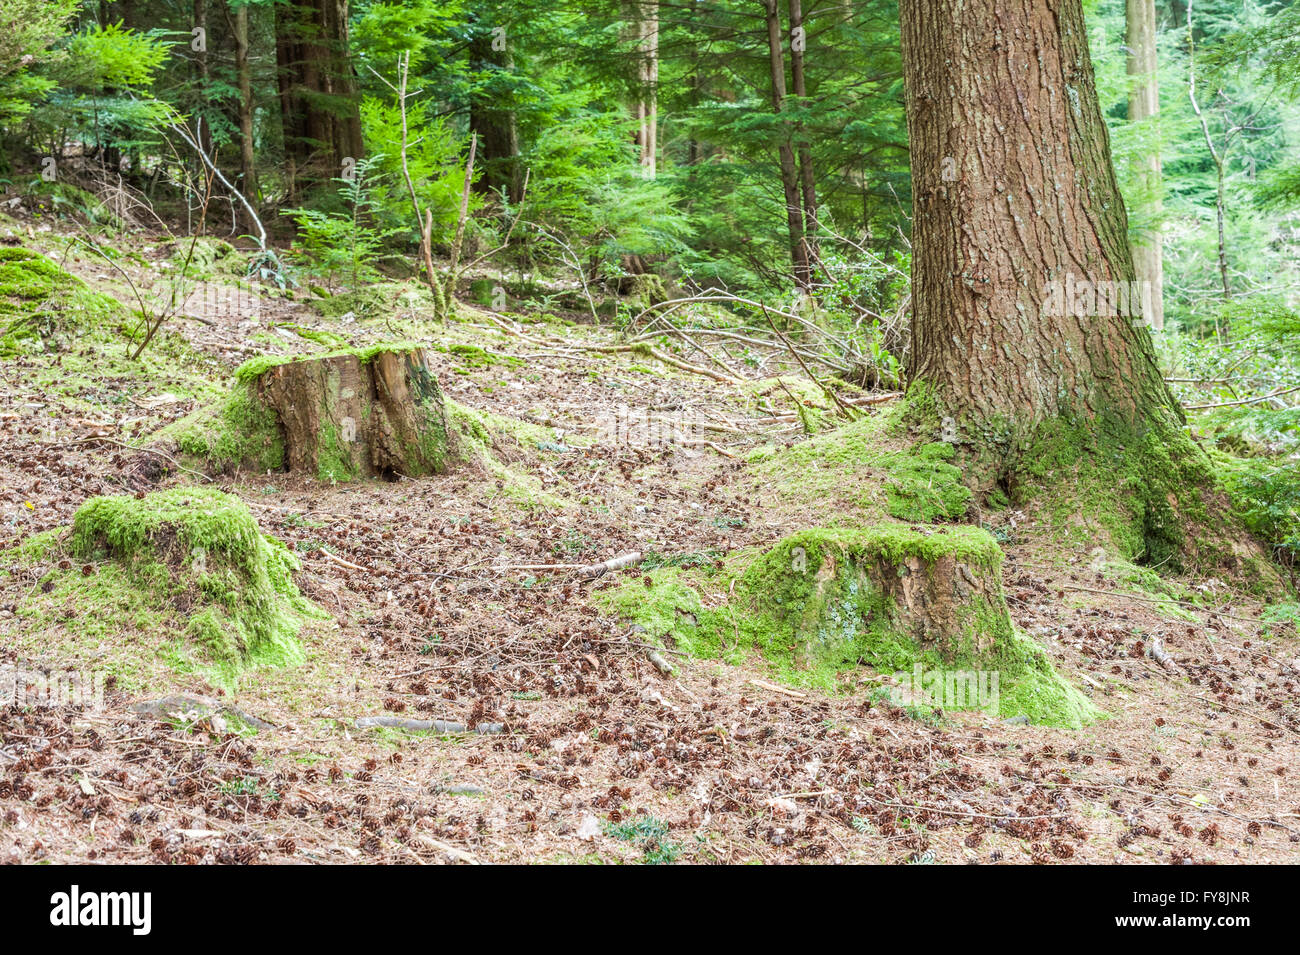 tree stumps covered in moss - Stock Image